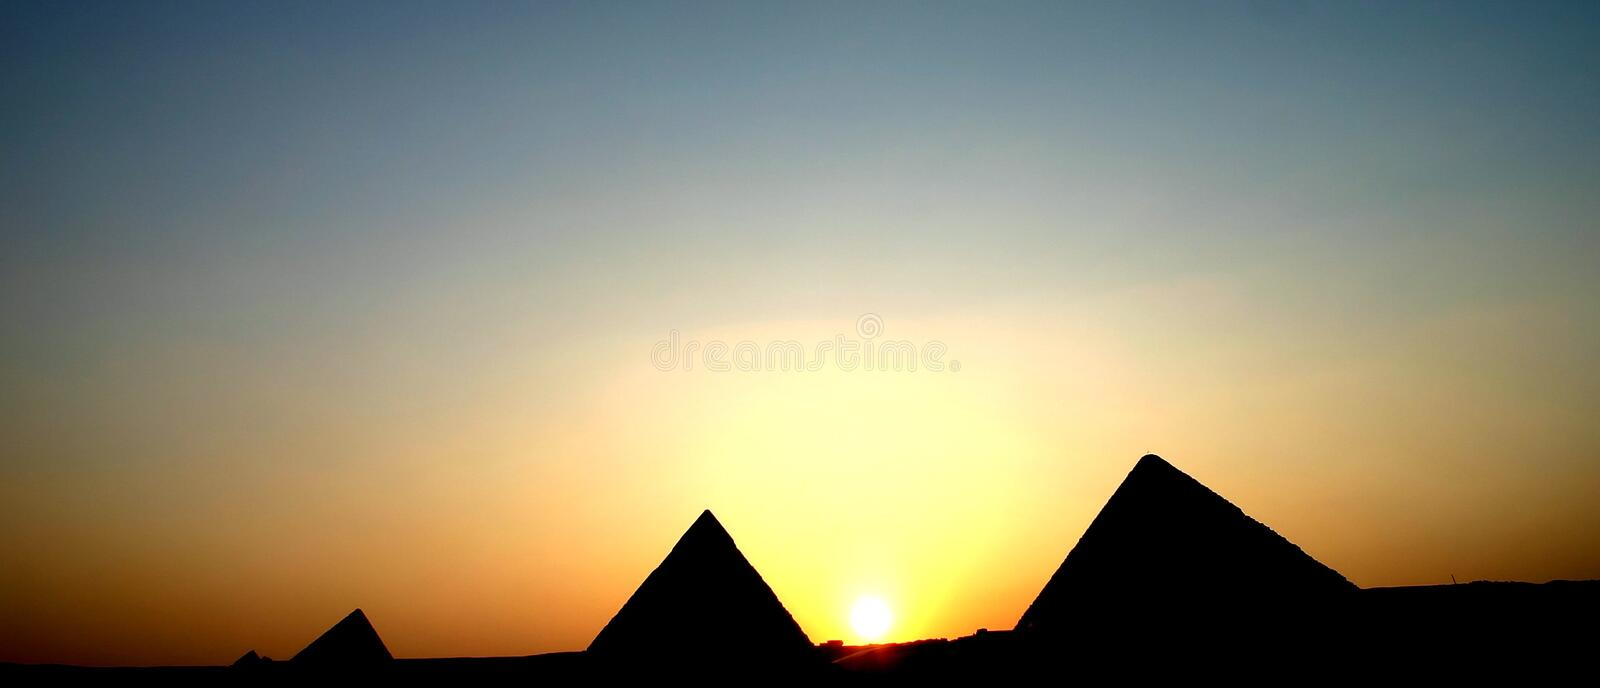 Pyramids sunset royalty free stock images